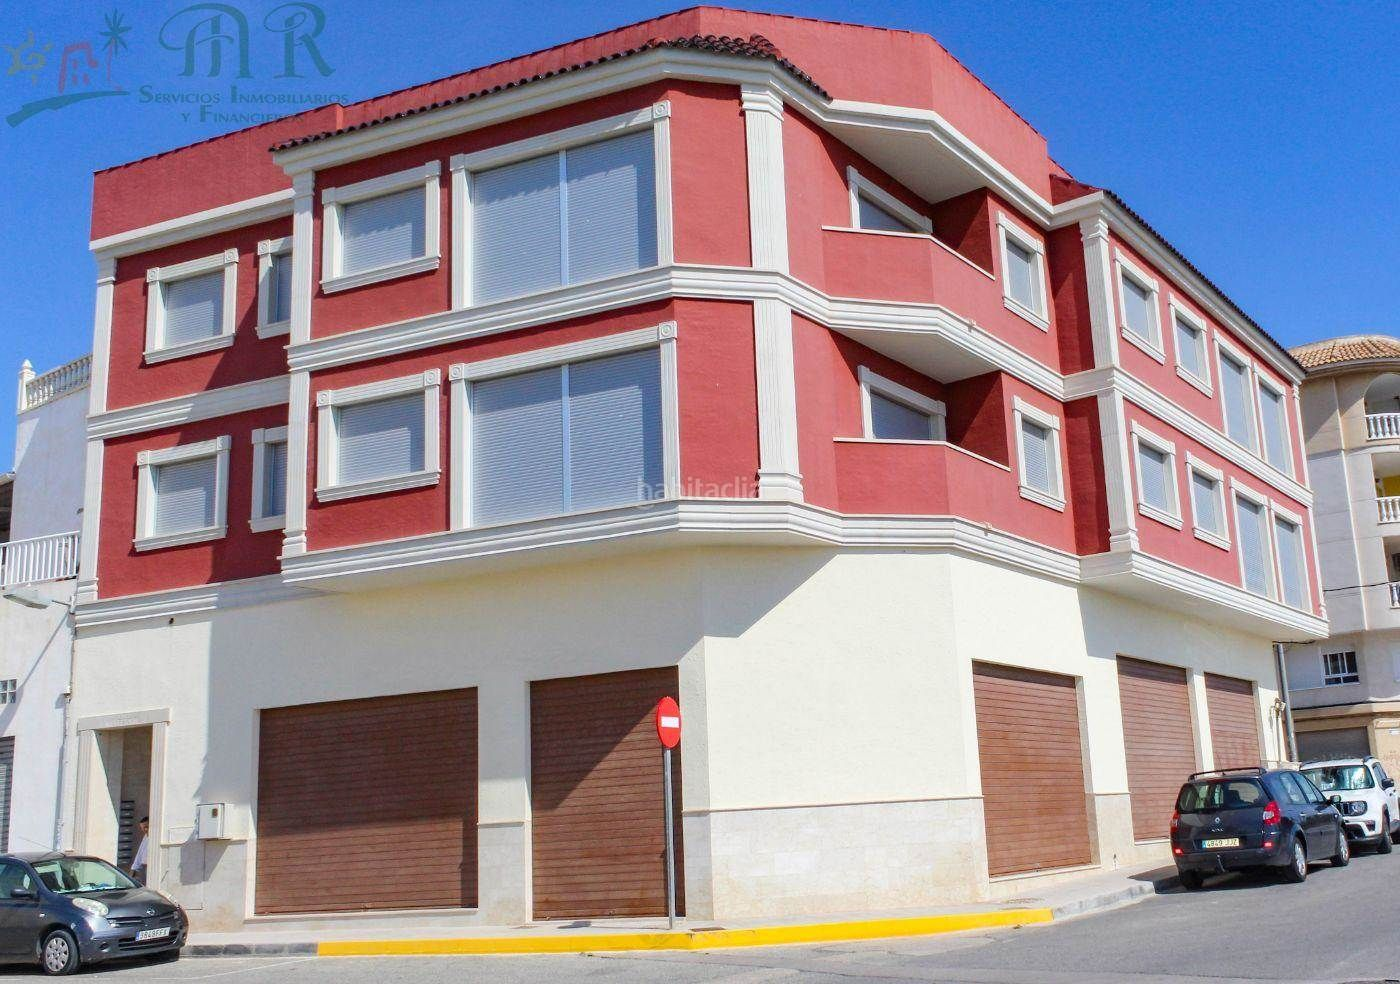 Piccolo appartamento in Montesinos (Los). Apartamento 66 m² en montesinos (los), alicante